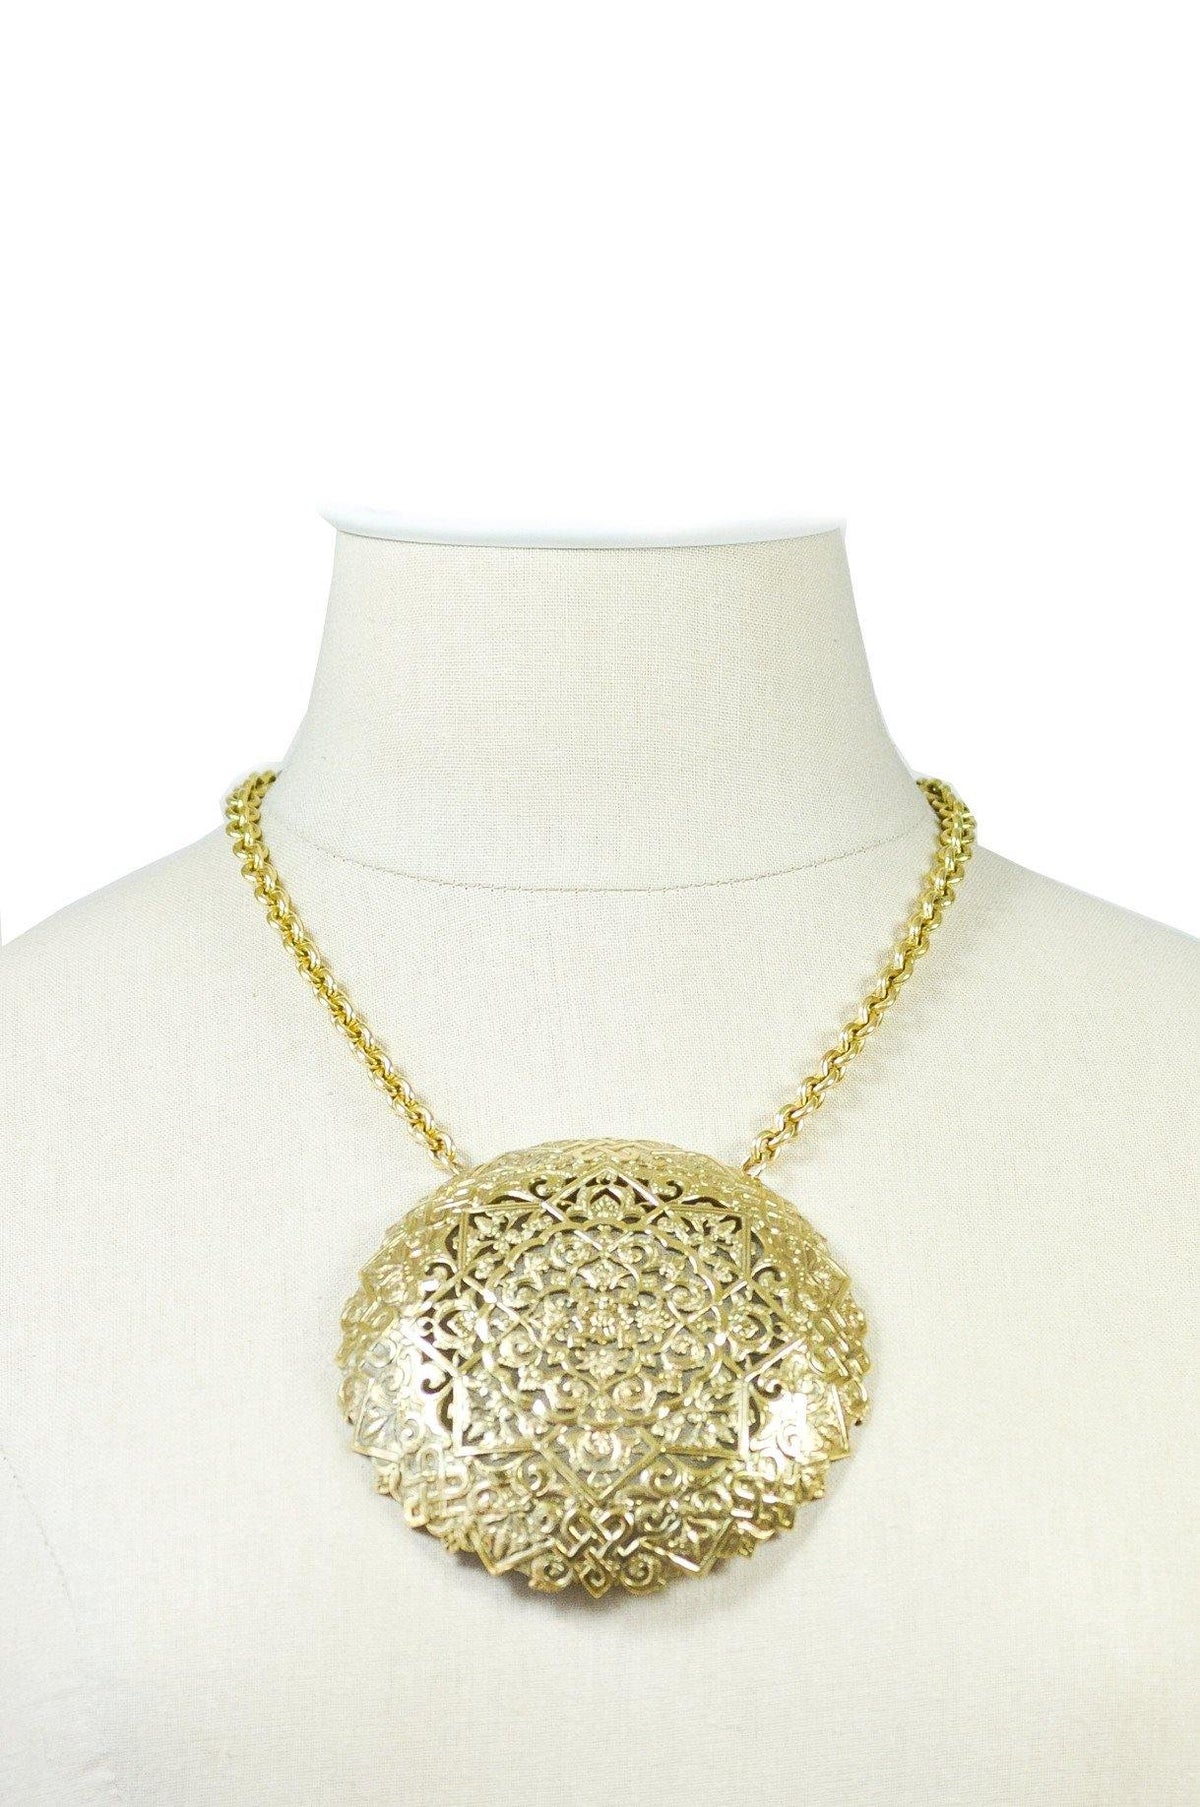 1970's Vintage Bold Medallion Necklace